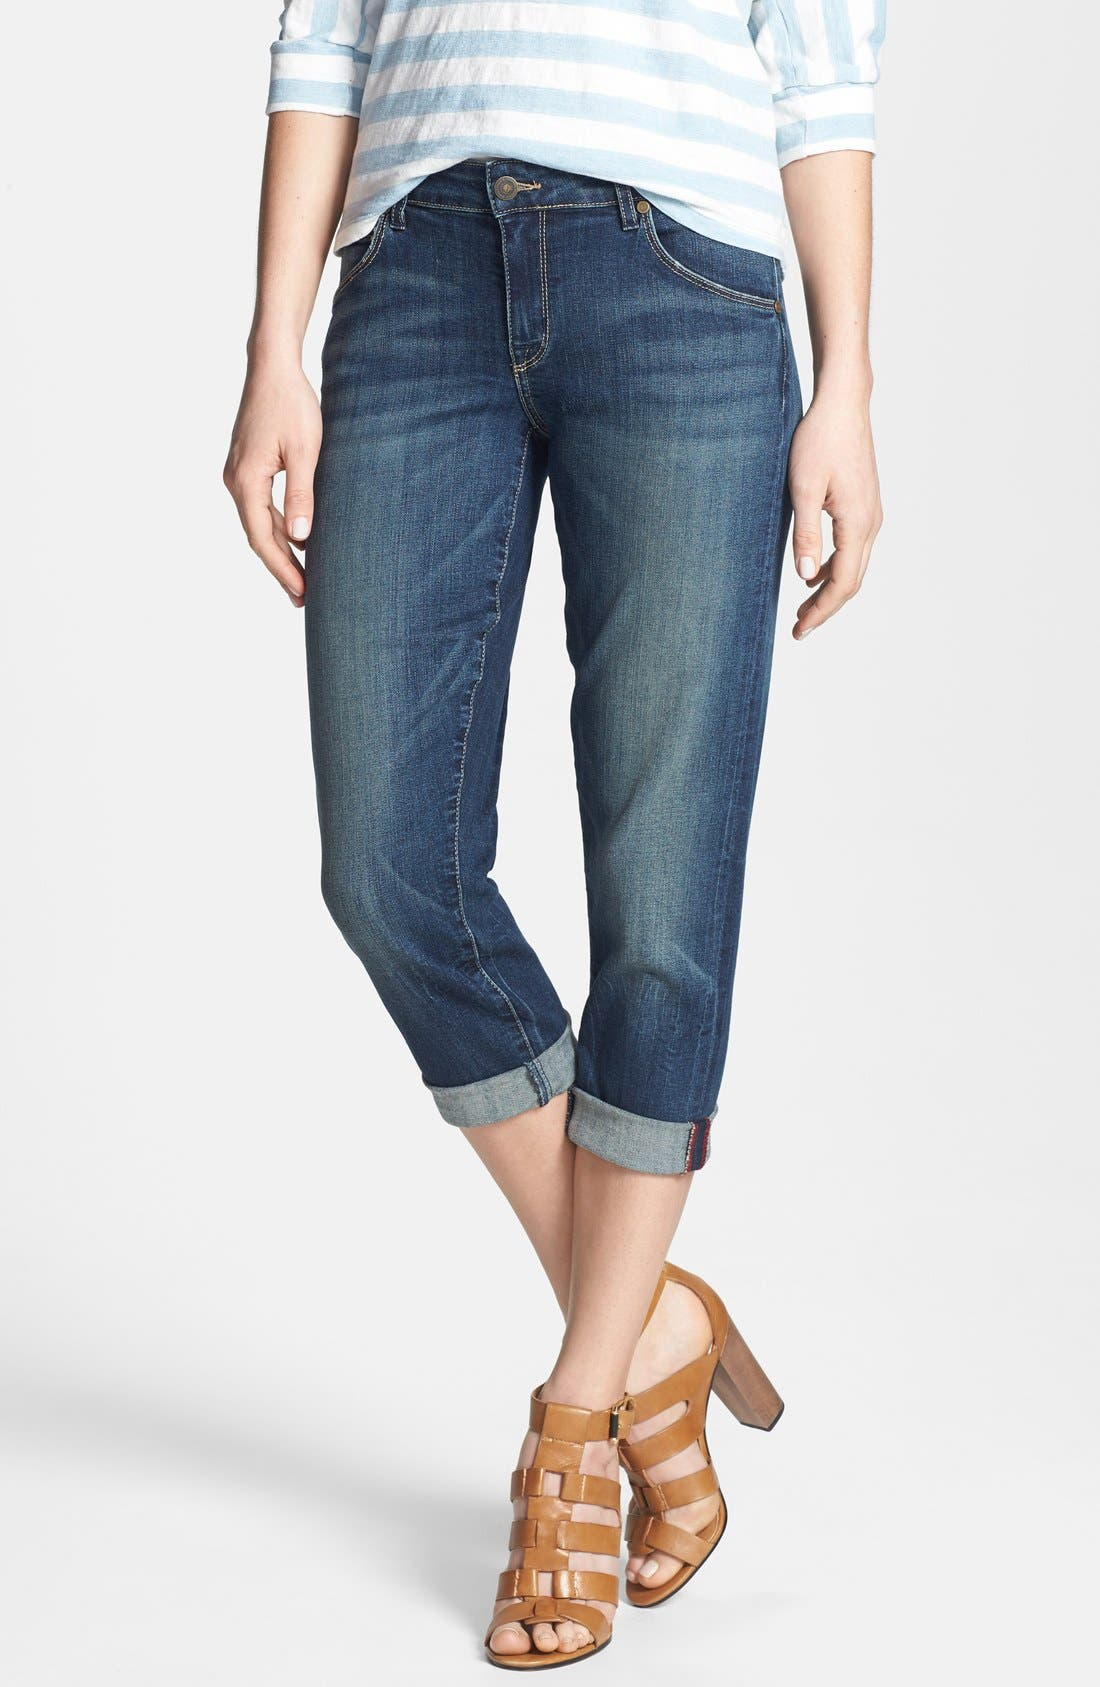 Alternate Image 1 Selected - CJ by Cookie Johnson 'Rejoice' Stretch Crop Boyfriend Jeans (Tops)